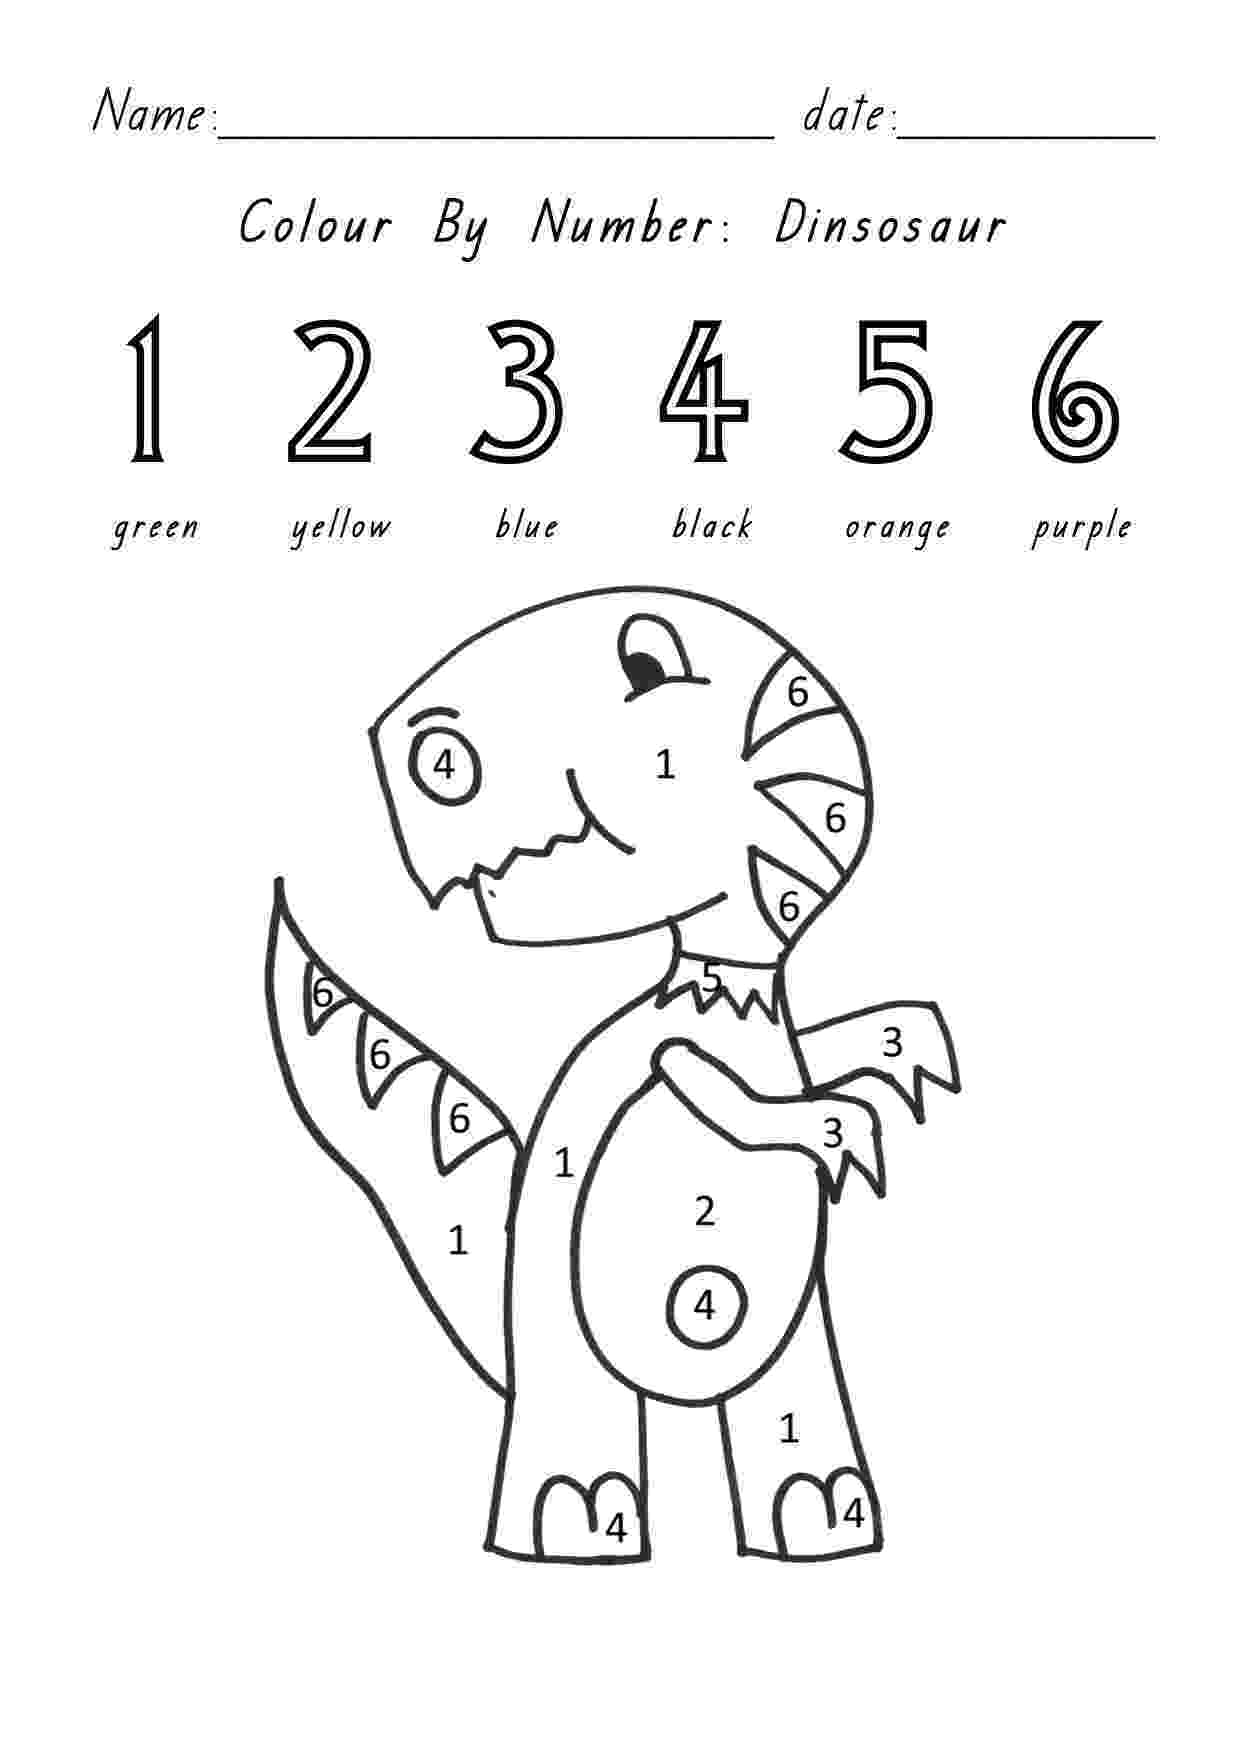 colour by number minibeasts color by number identifying numbers 0 10 free sample by minibeasts colour by number